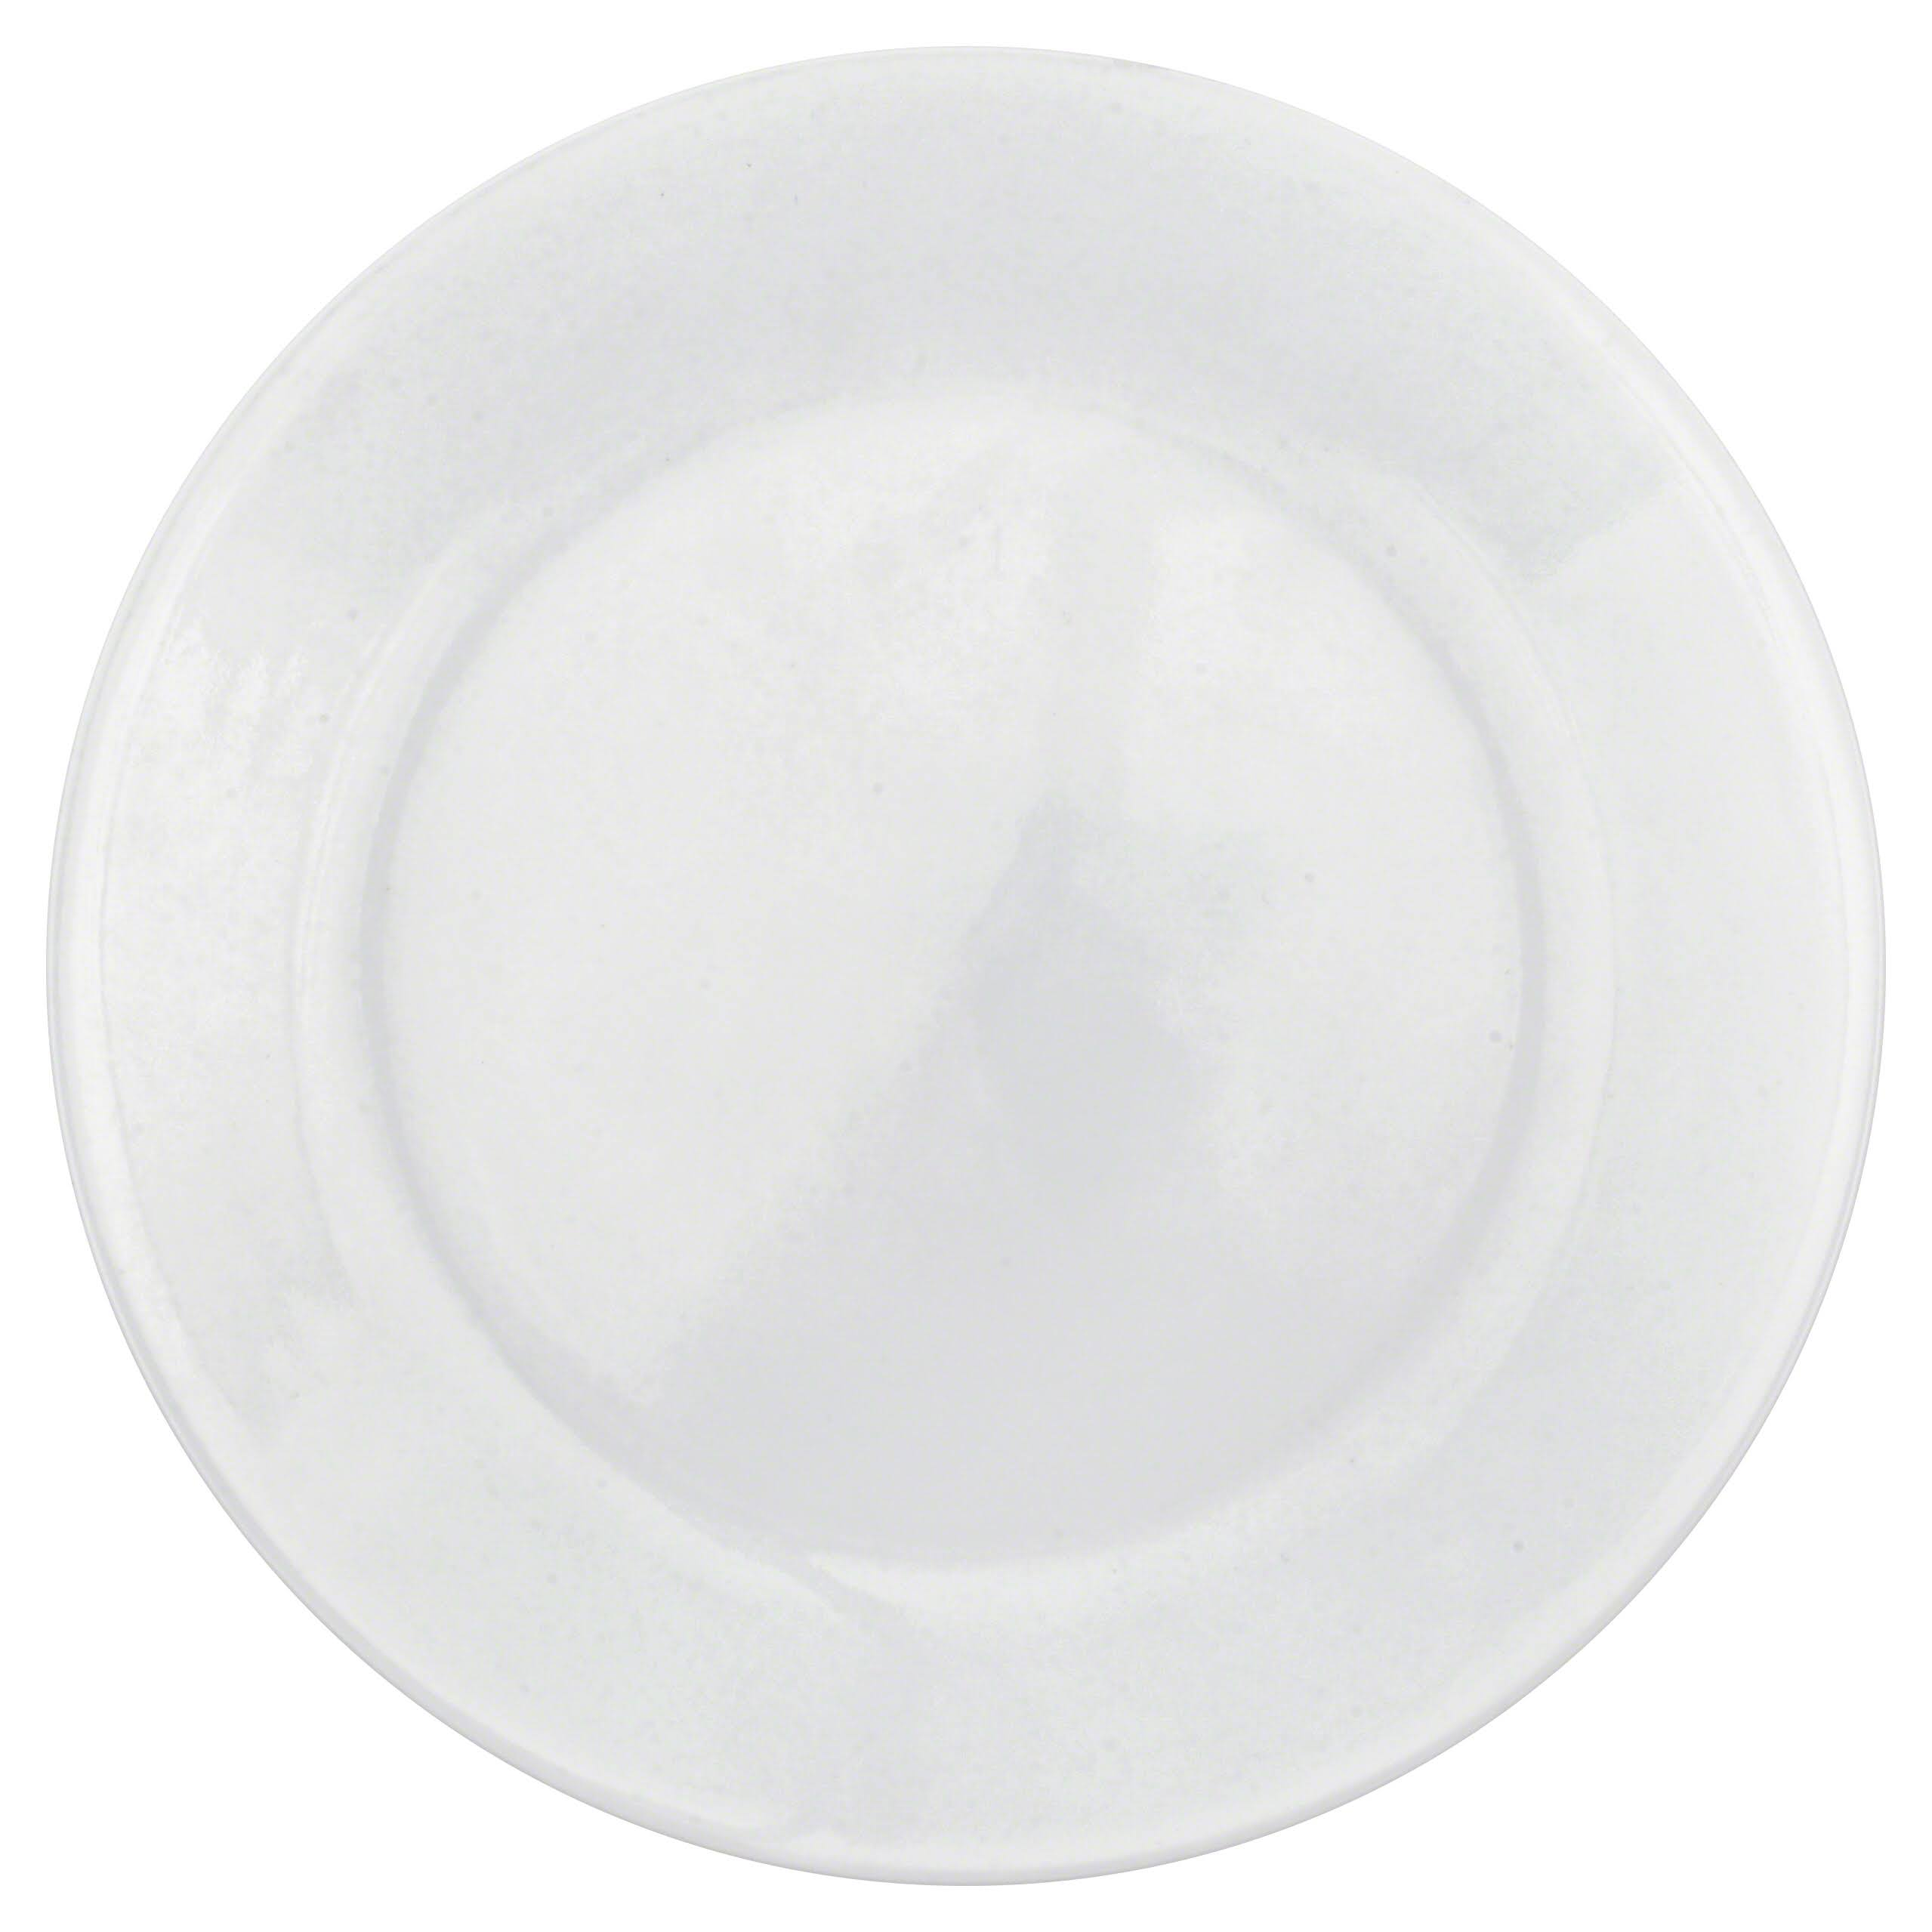 Corelle 6003893 Dinner Plate - Winter Frost White, 10.25""